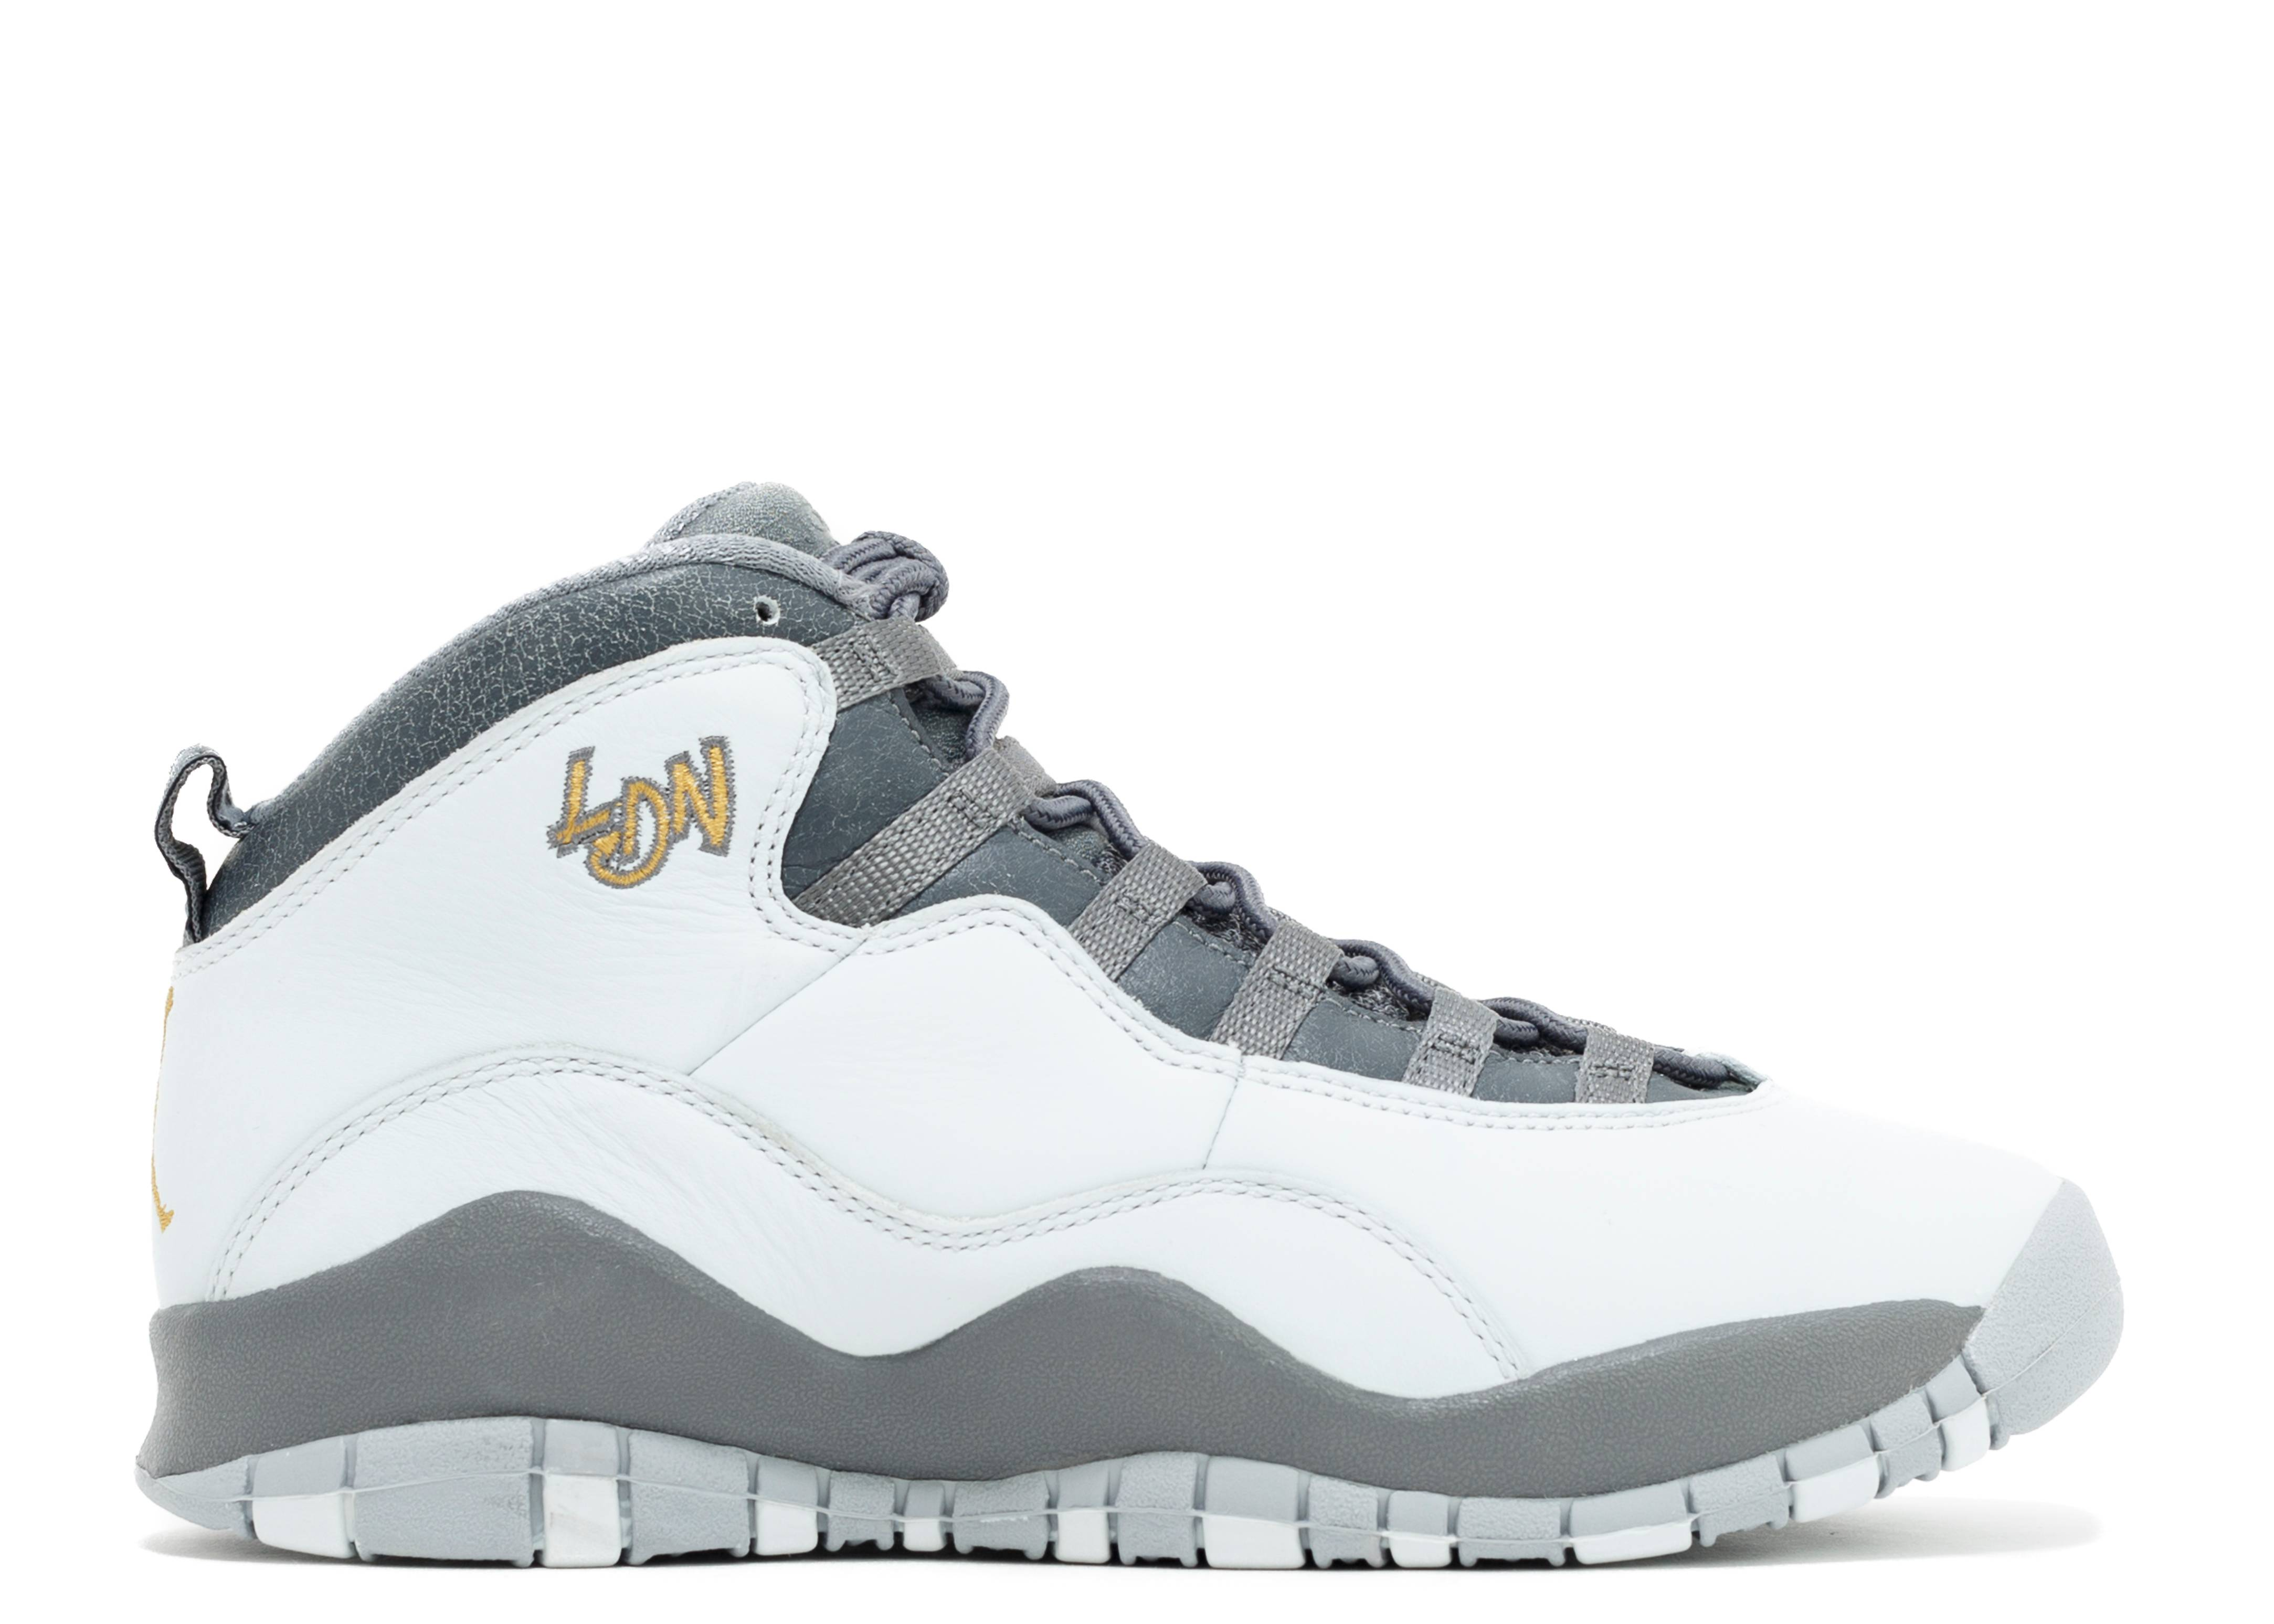 8bd99edadfc0 Air Jordan 10 (X) Shoes - Nike